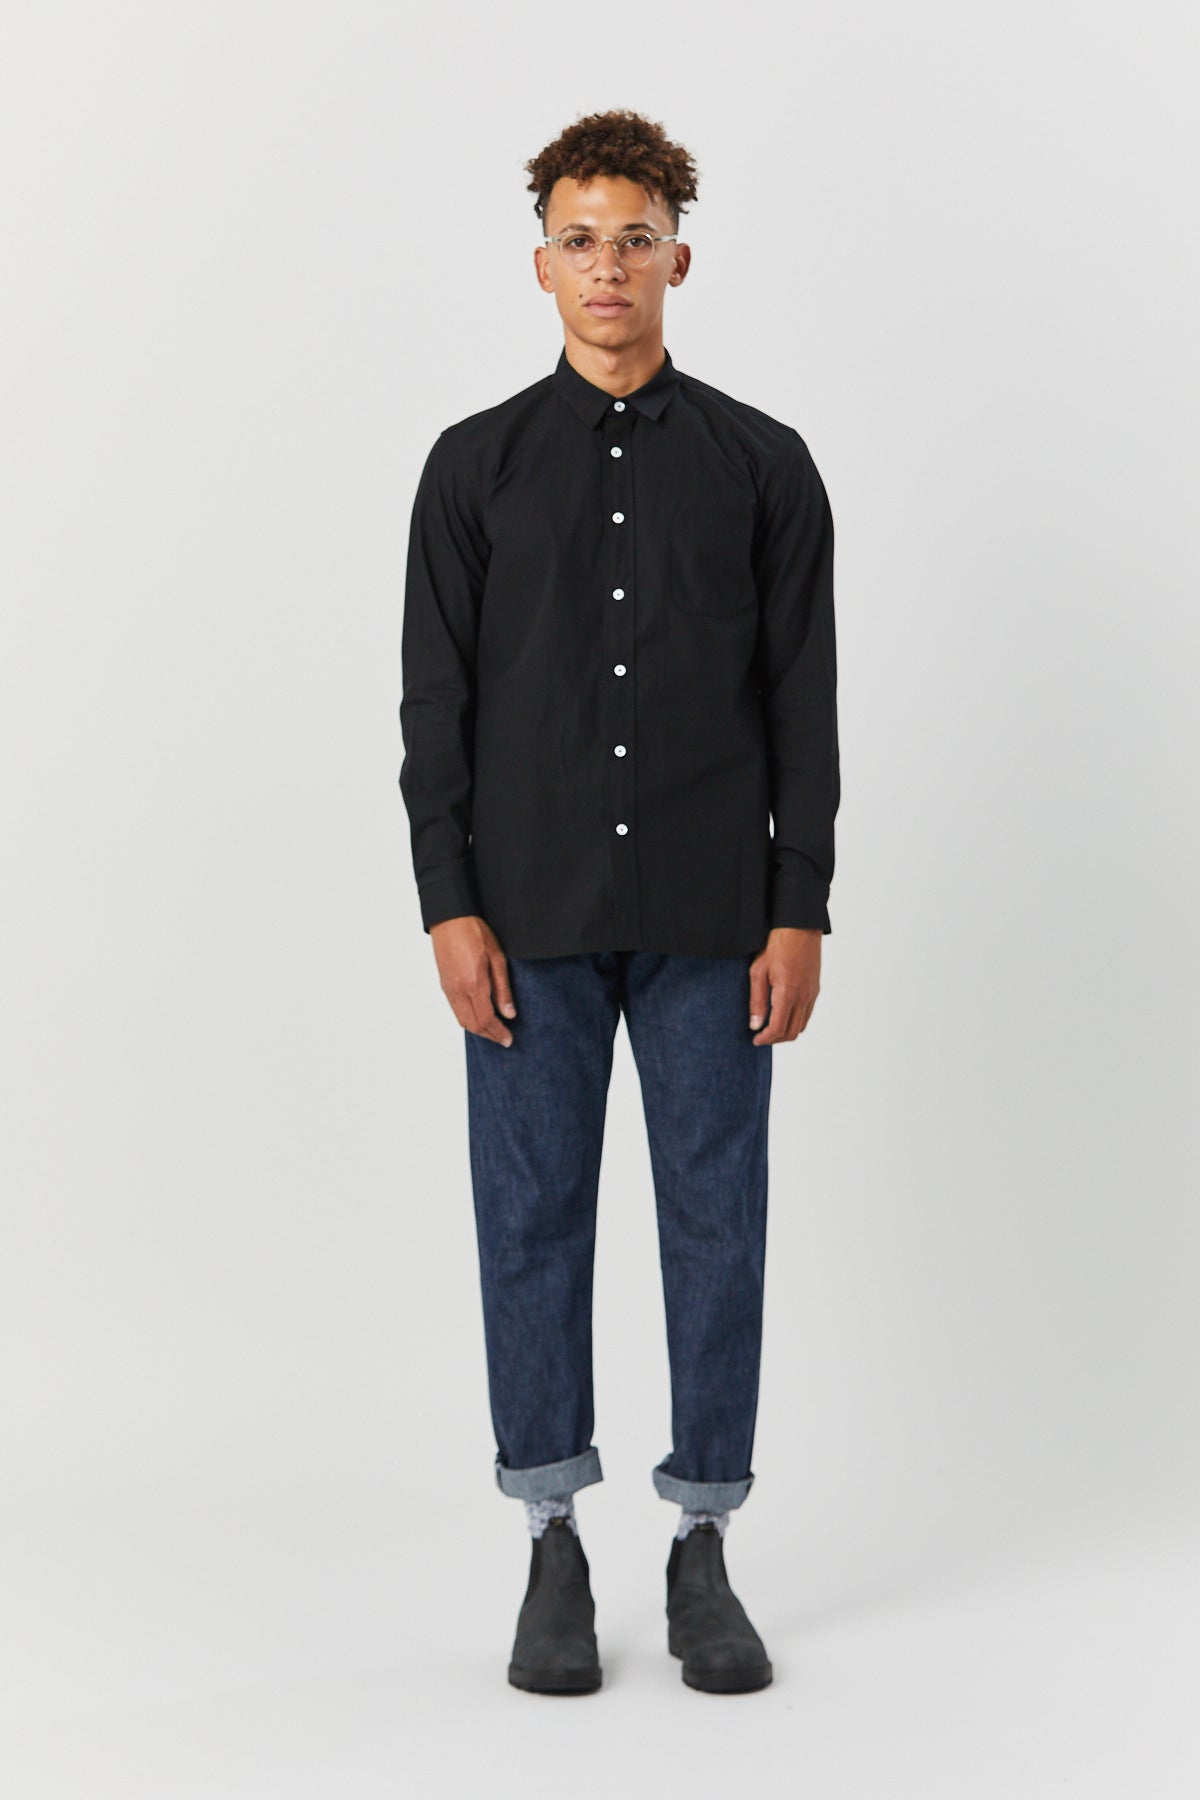 TYPEWRITER SHIRT IN BLACK - Fortune Goods